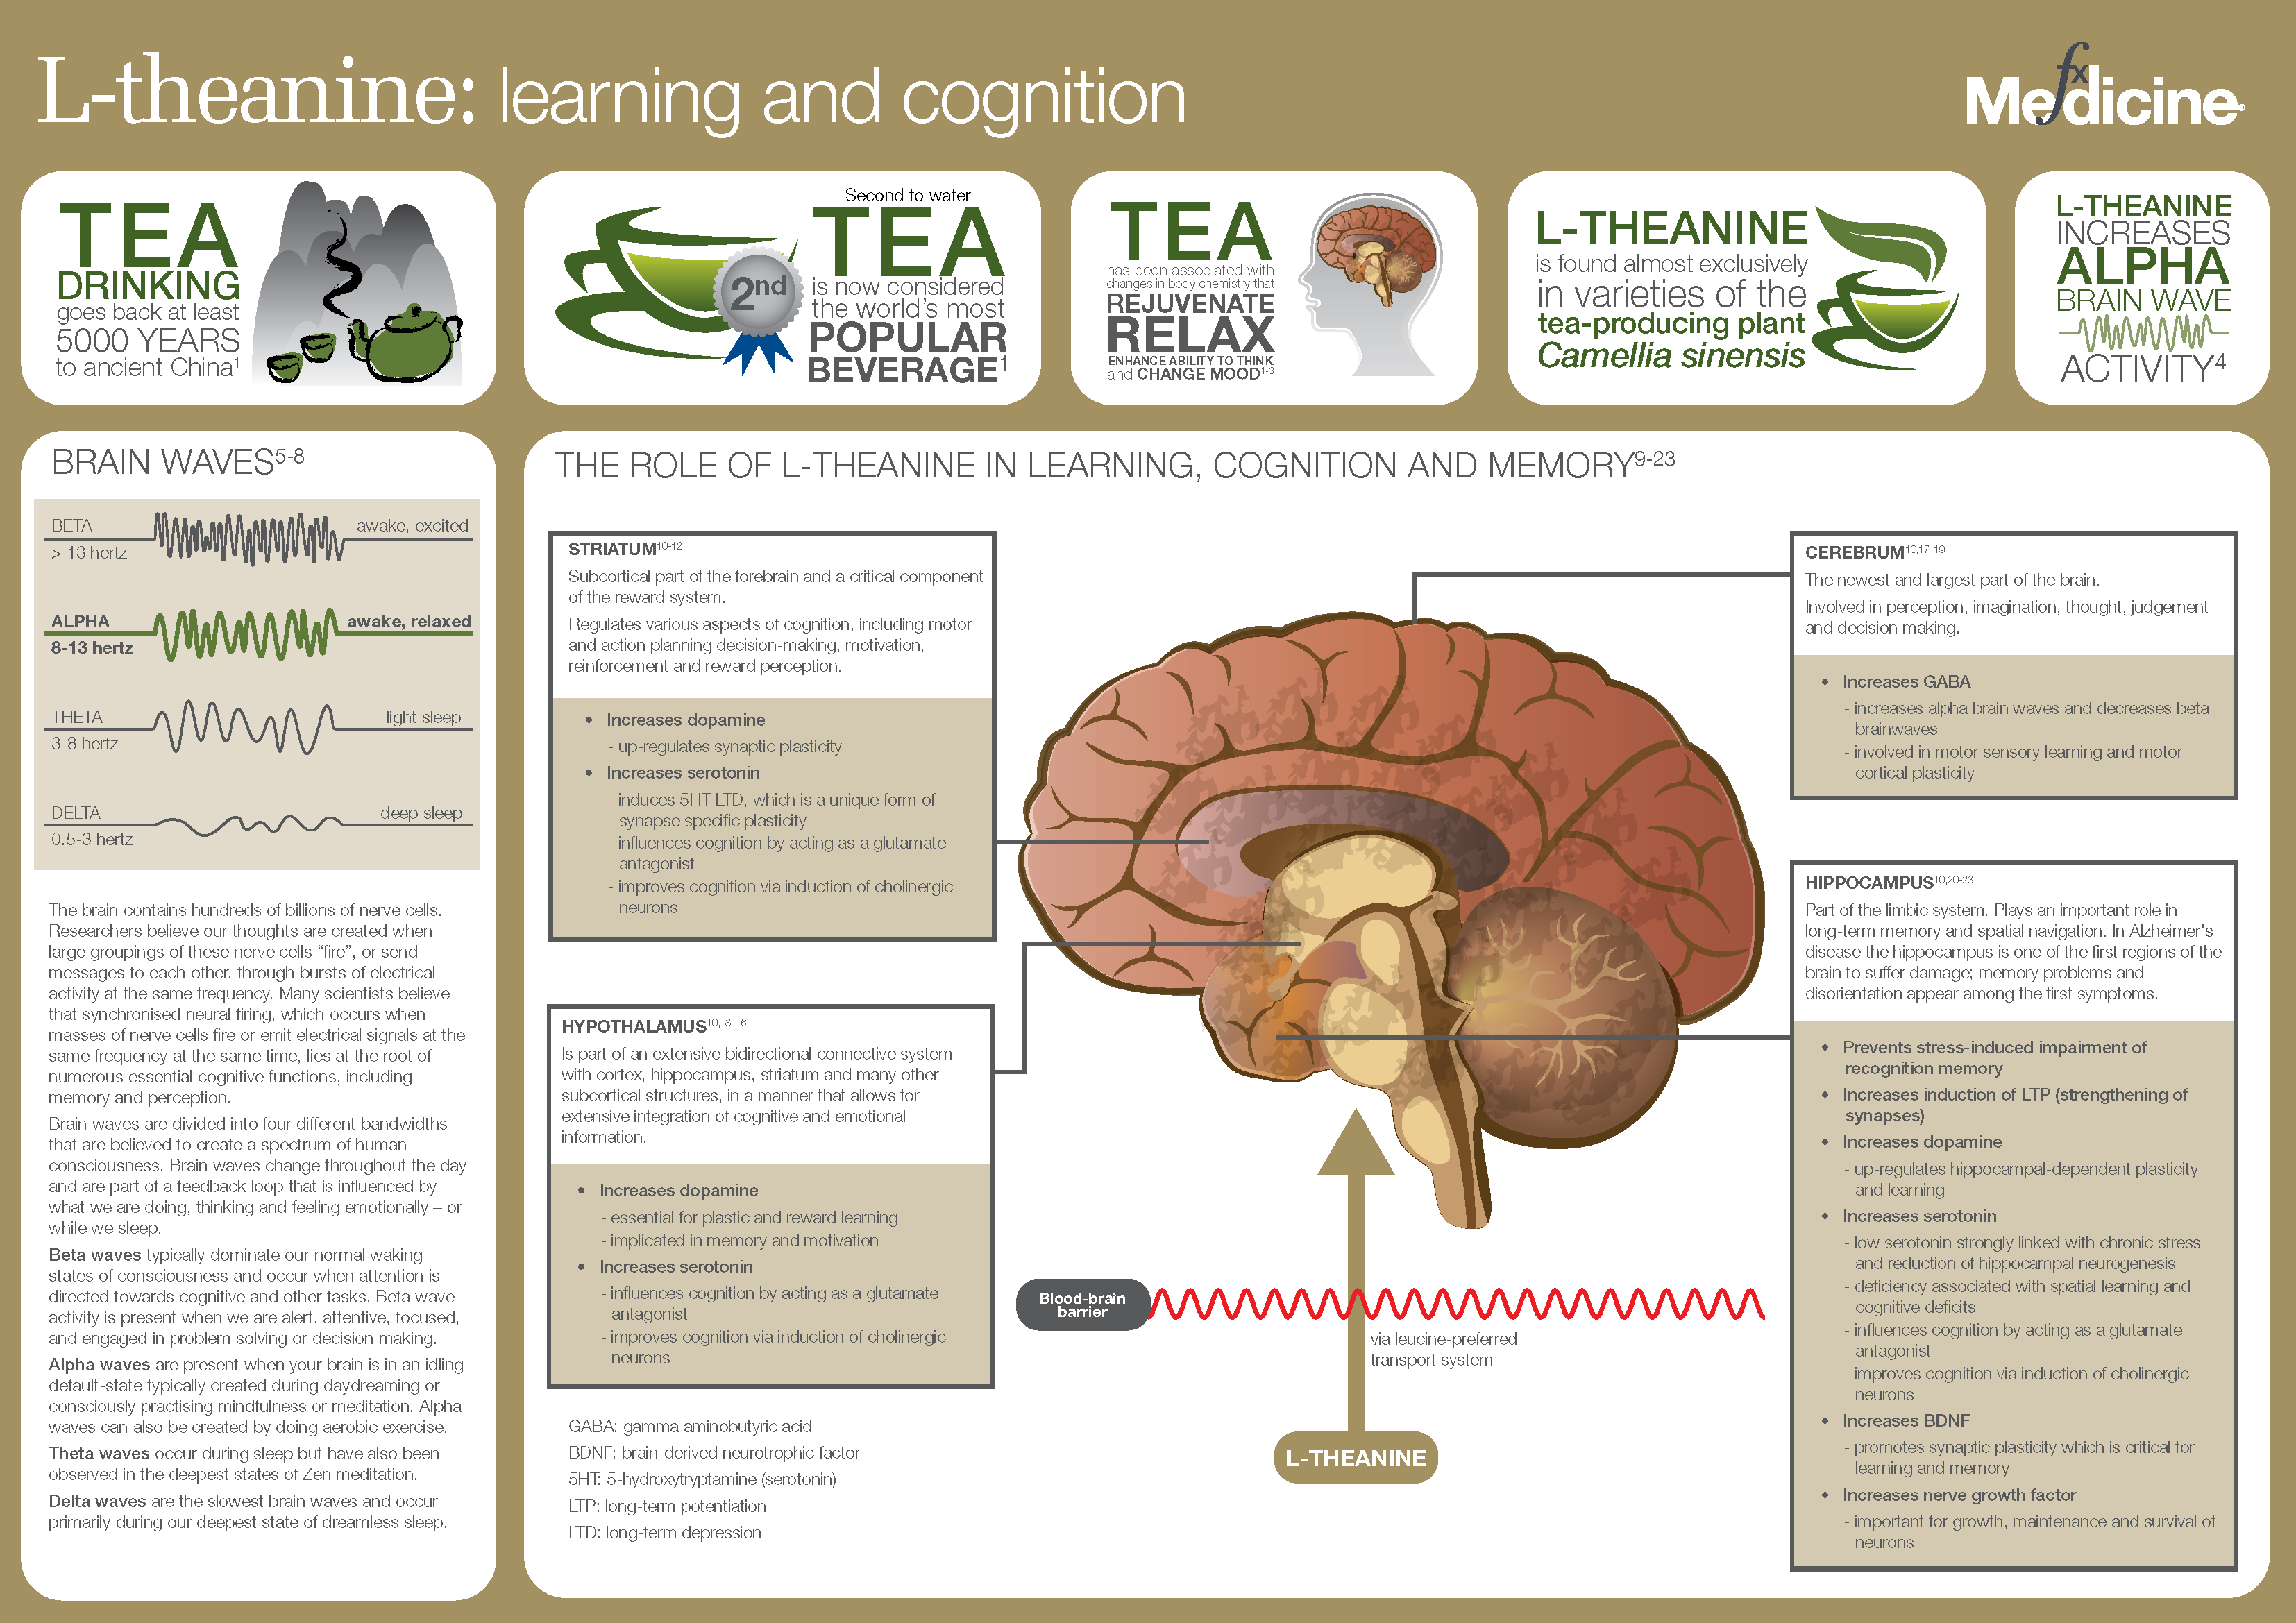 L-theanine-Learning%20and%20cognition.png